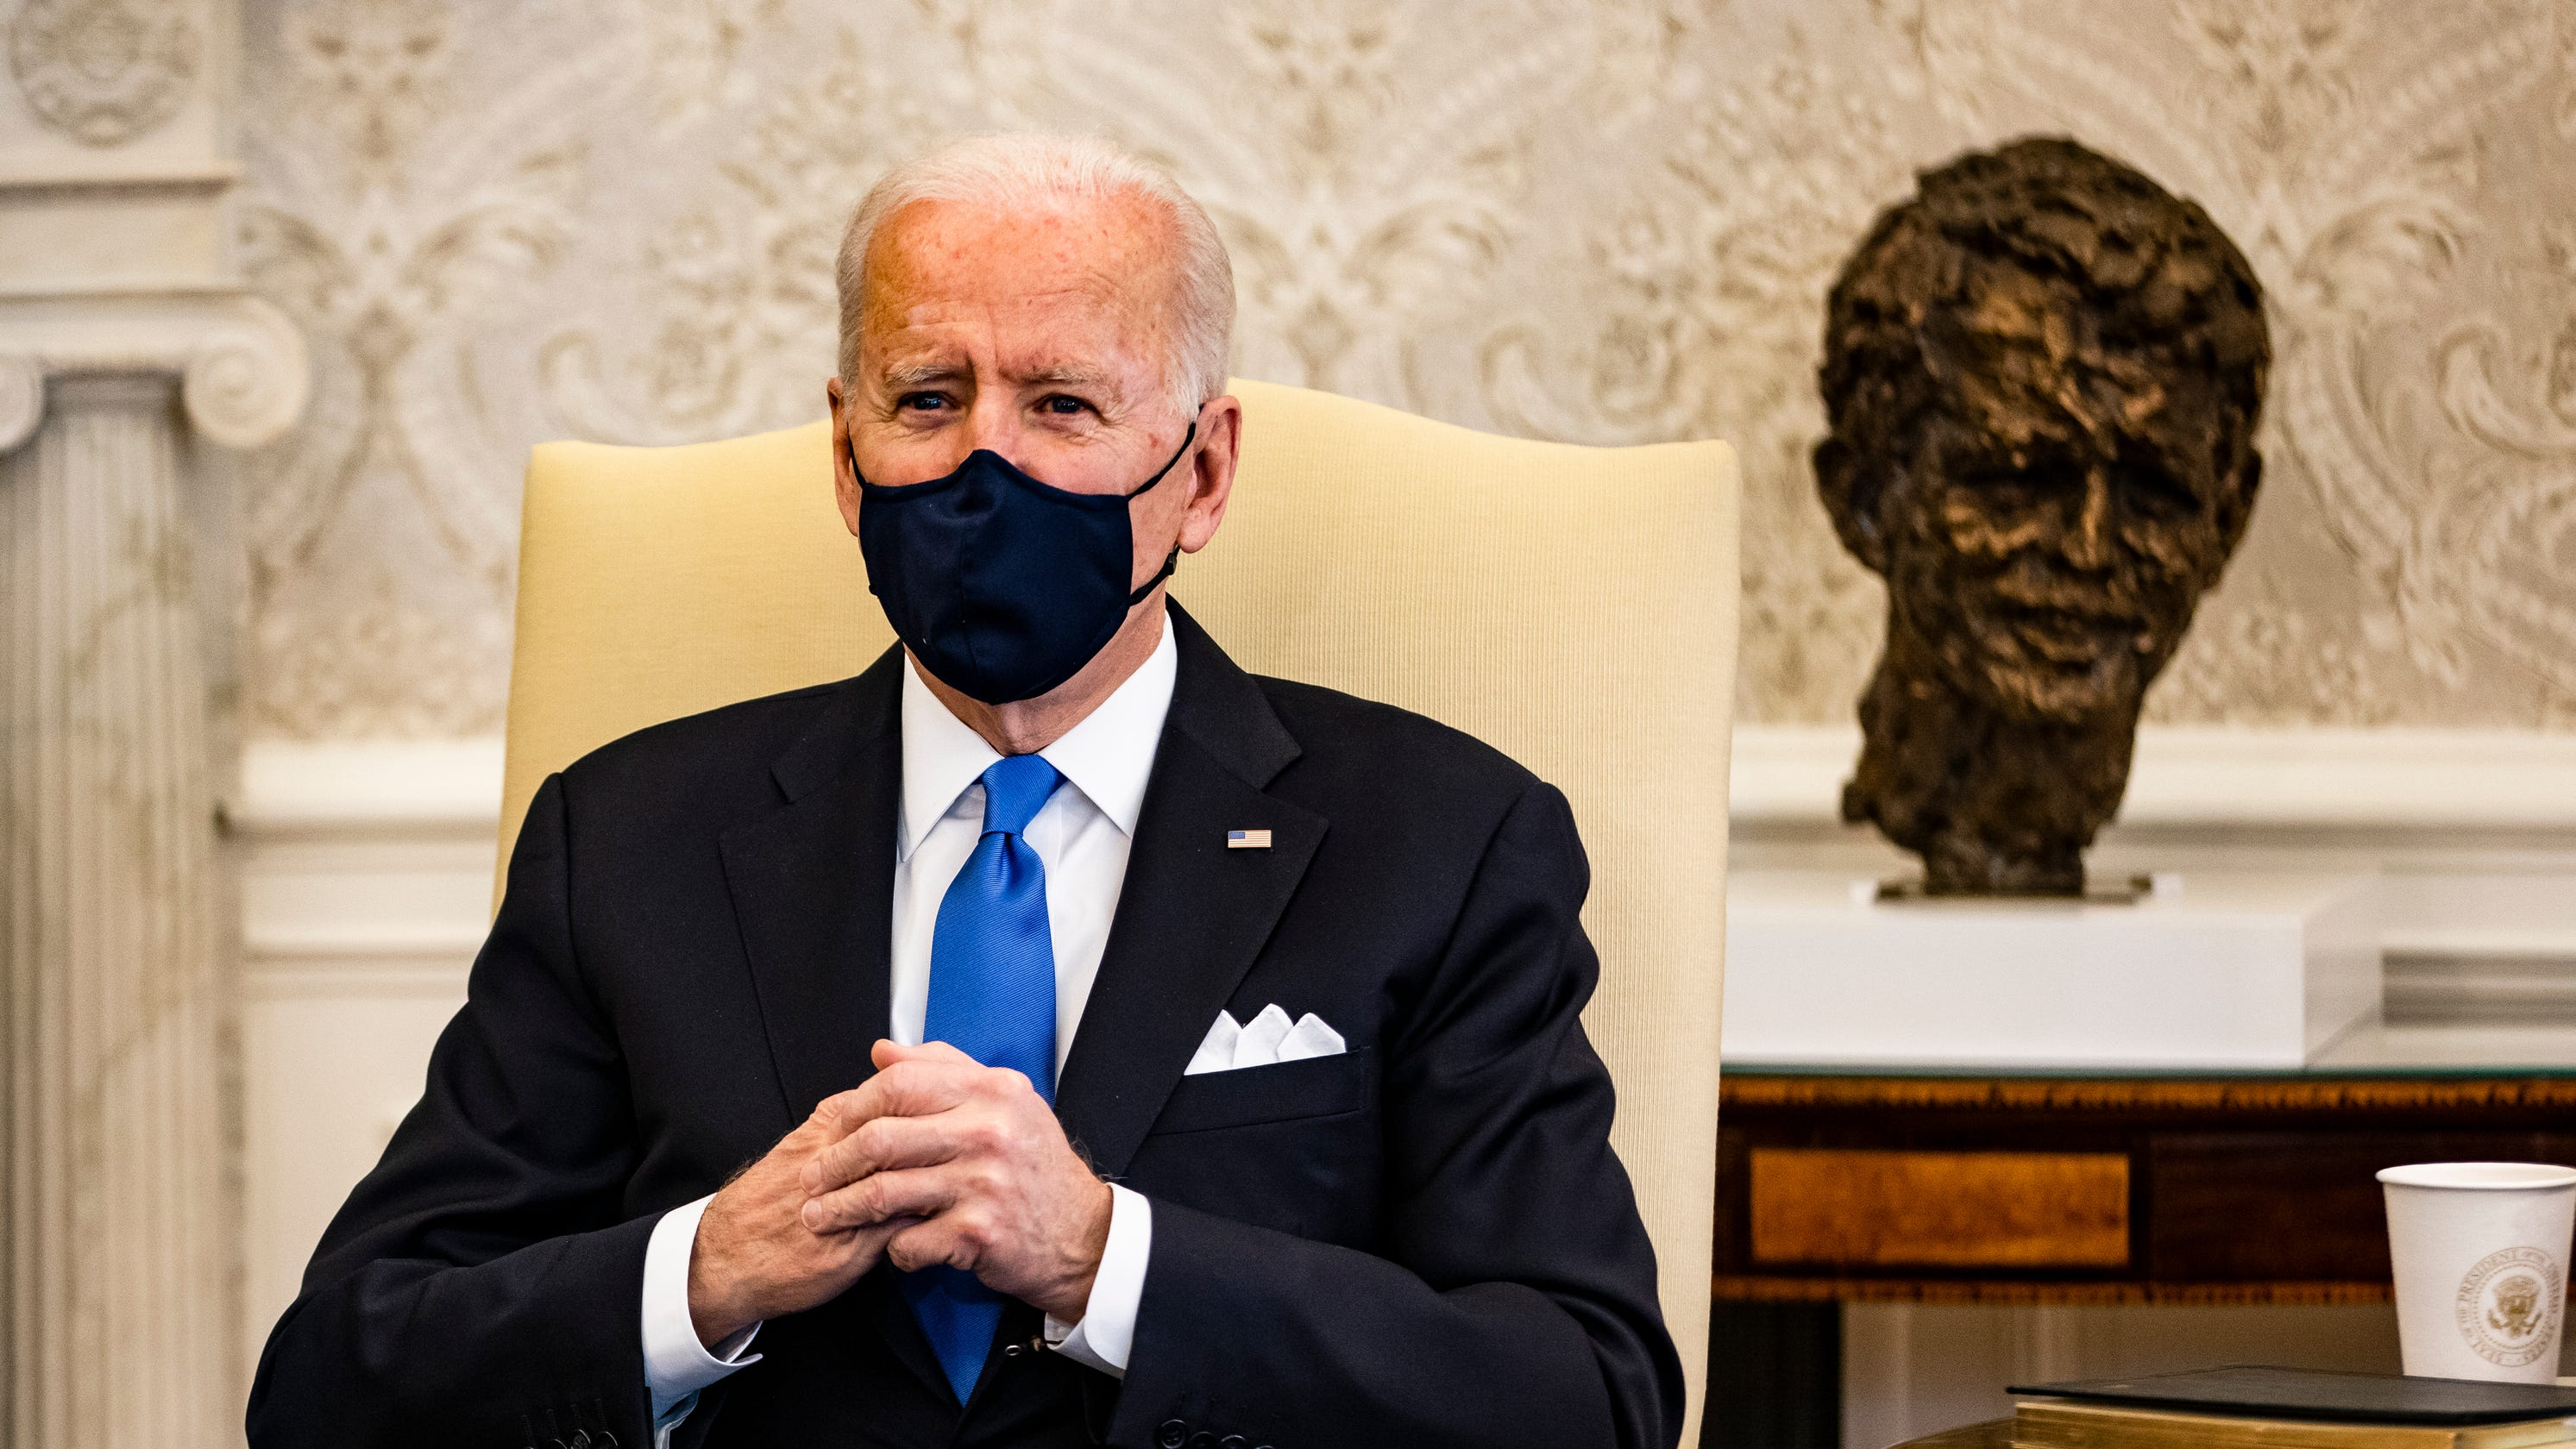 'Dinner table' politics: Why Joe Biden ditched bipartisan dealmaking to pass his COVID-19 relief bill thumbnail